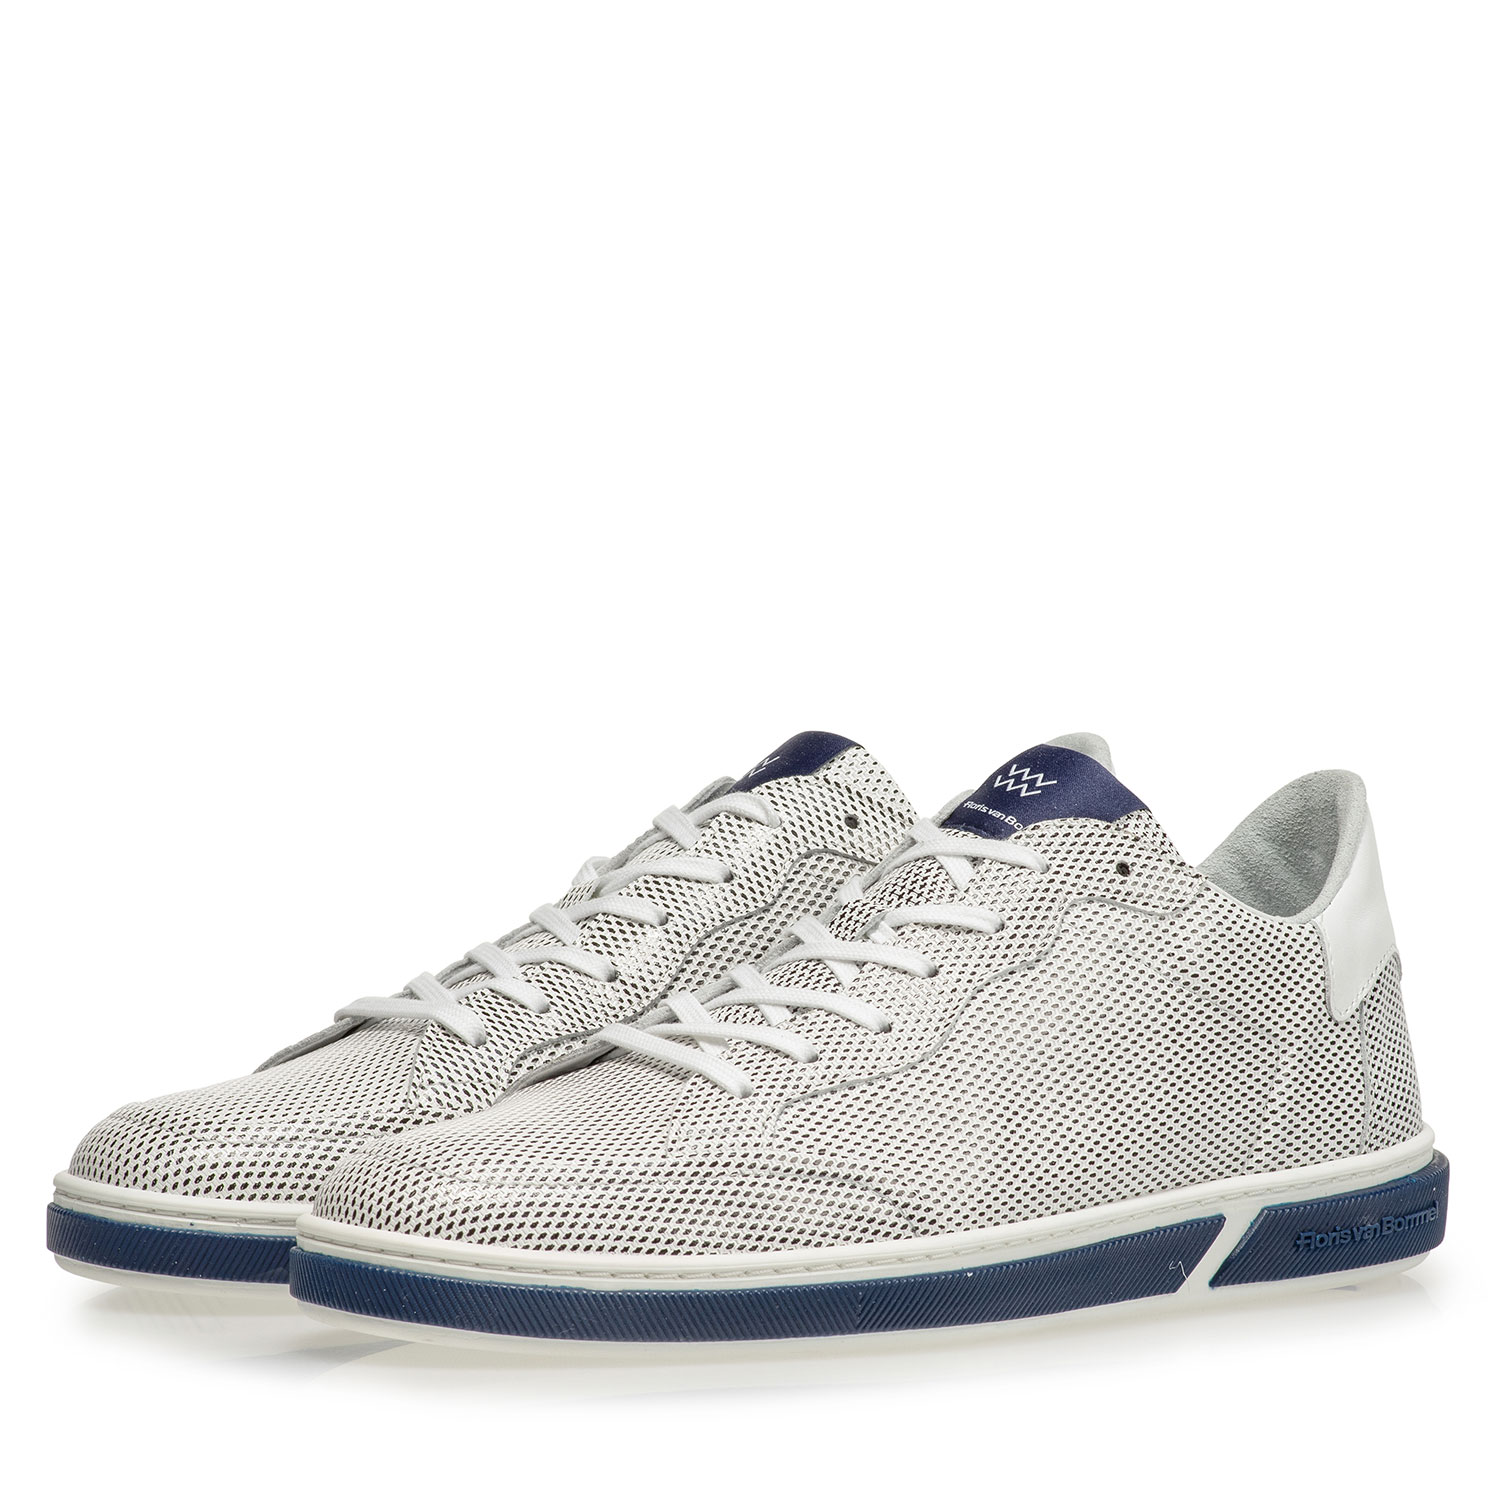 13350/08 - White calf leather lace shoe with print